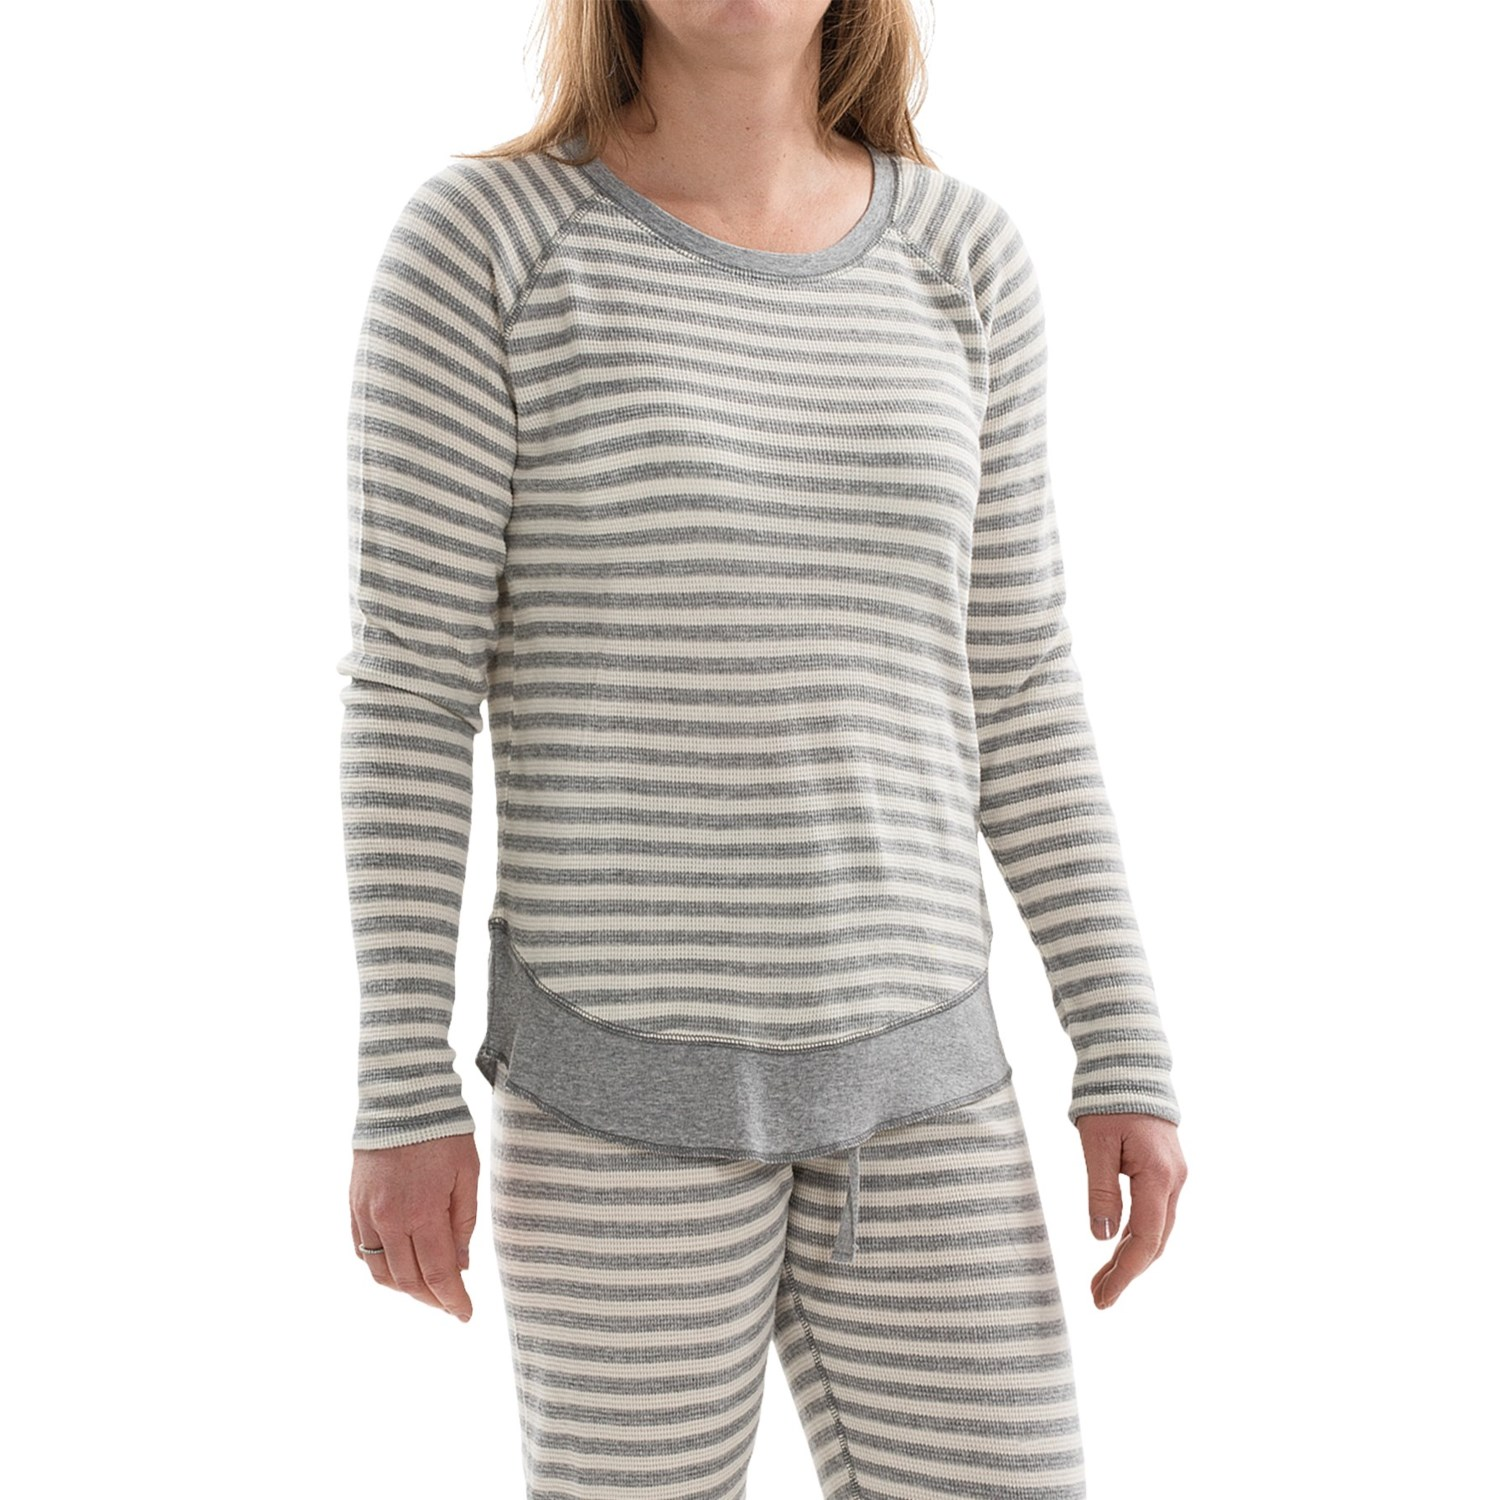 Pj Salvage Striped Thermal Shirt For Women Save 49